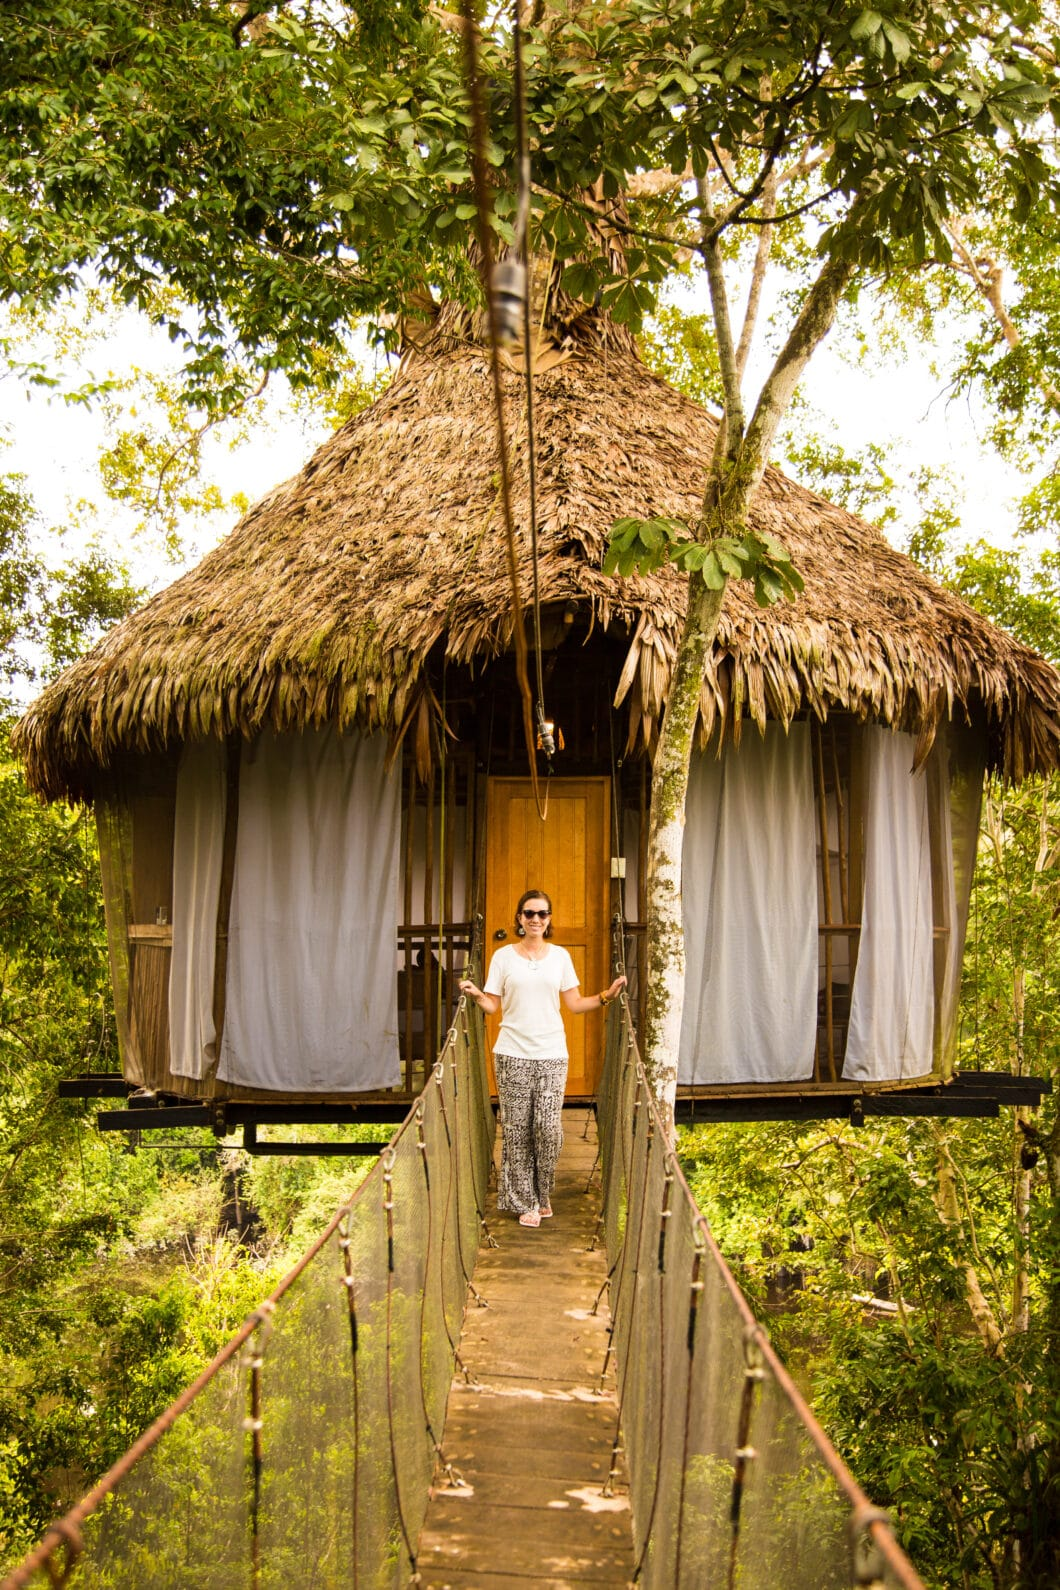 My Honest Experience Staying at the Treehouse Lodge in Peru